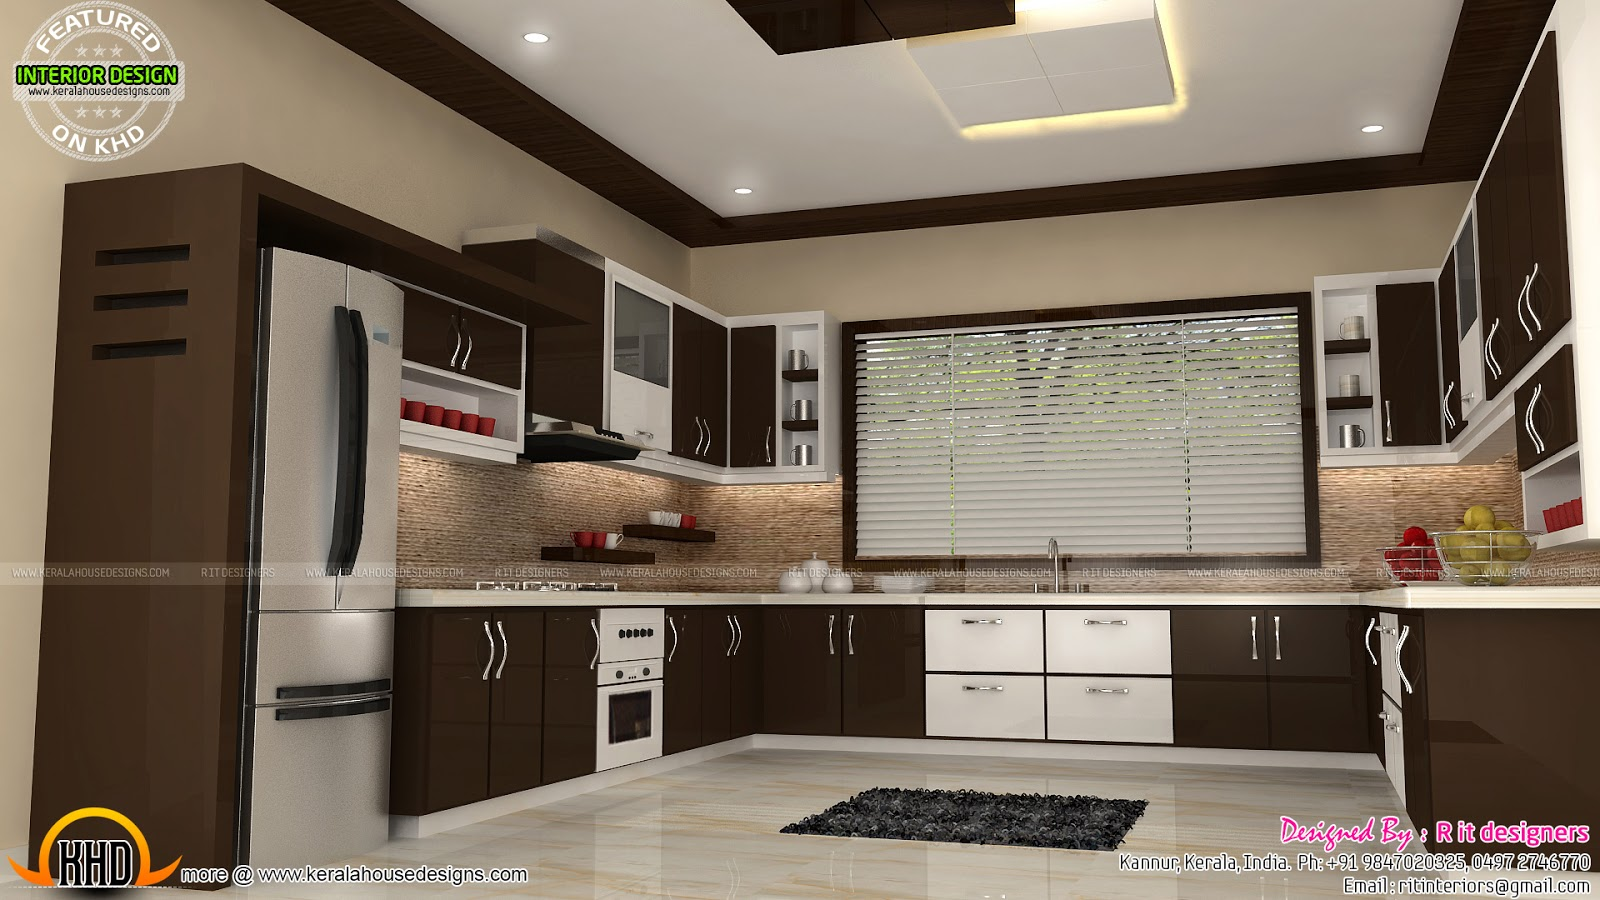 kerala home design and floor plans interiors of bedrooms and kitchen